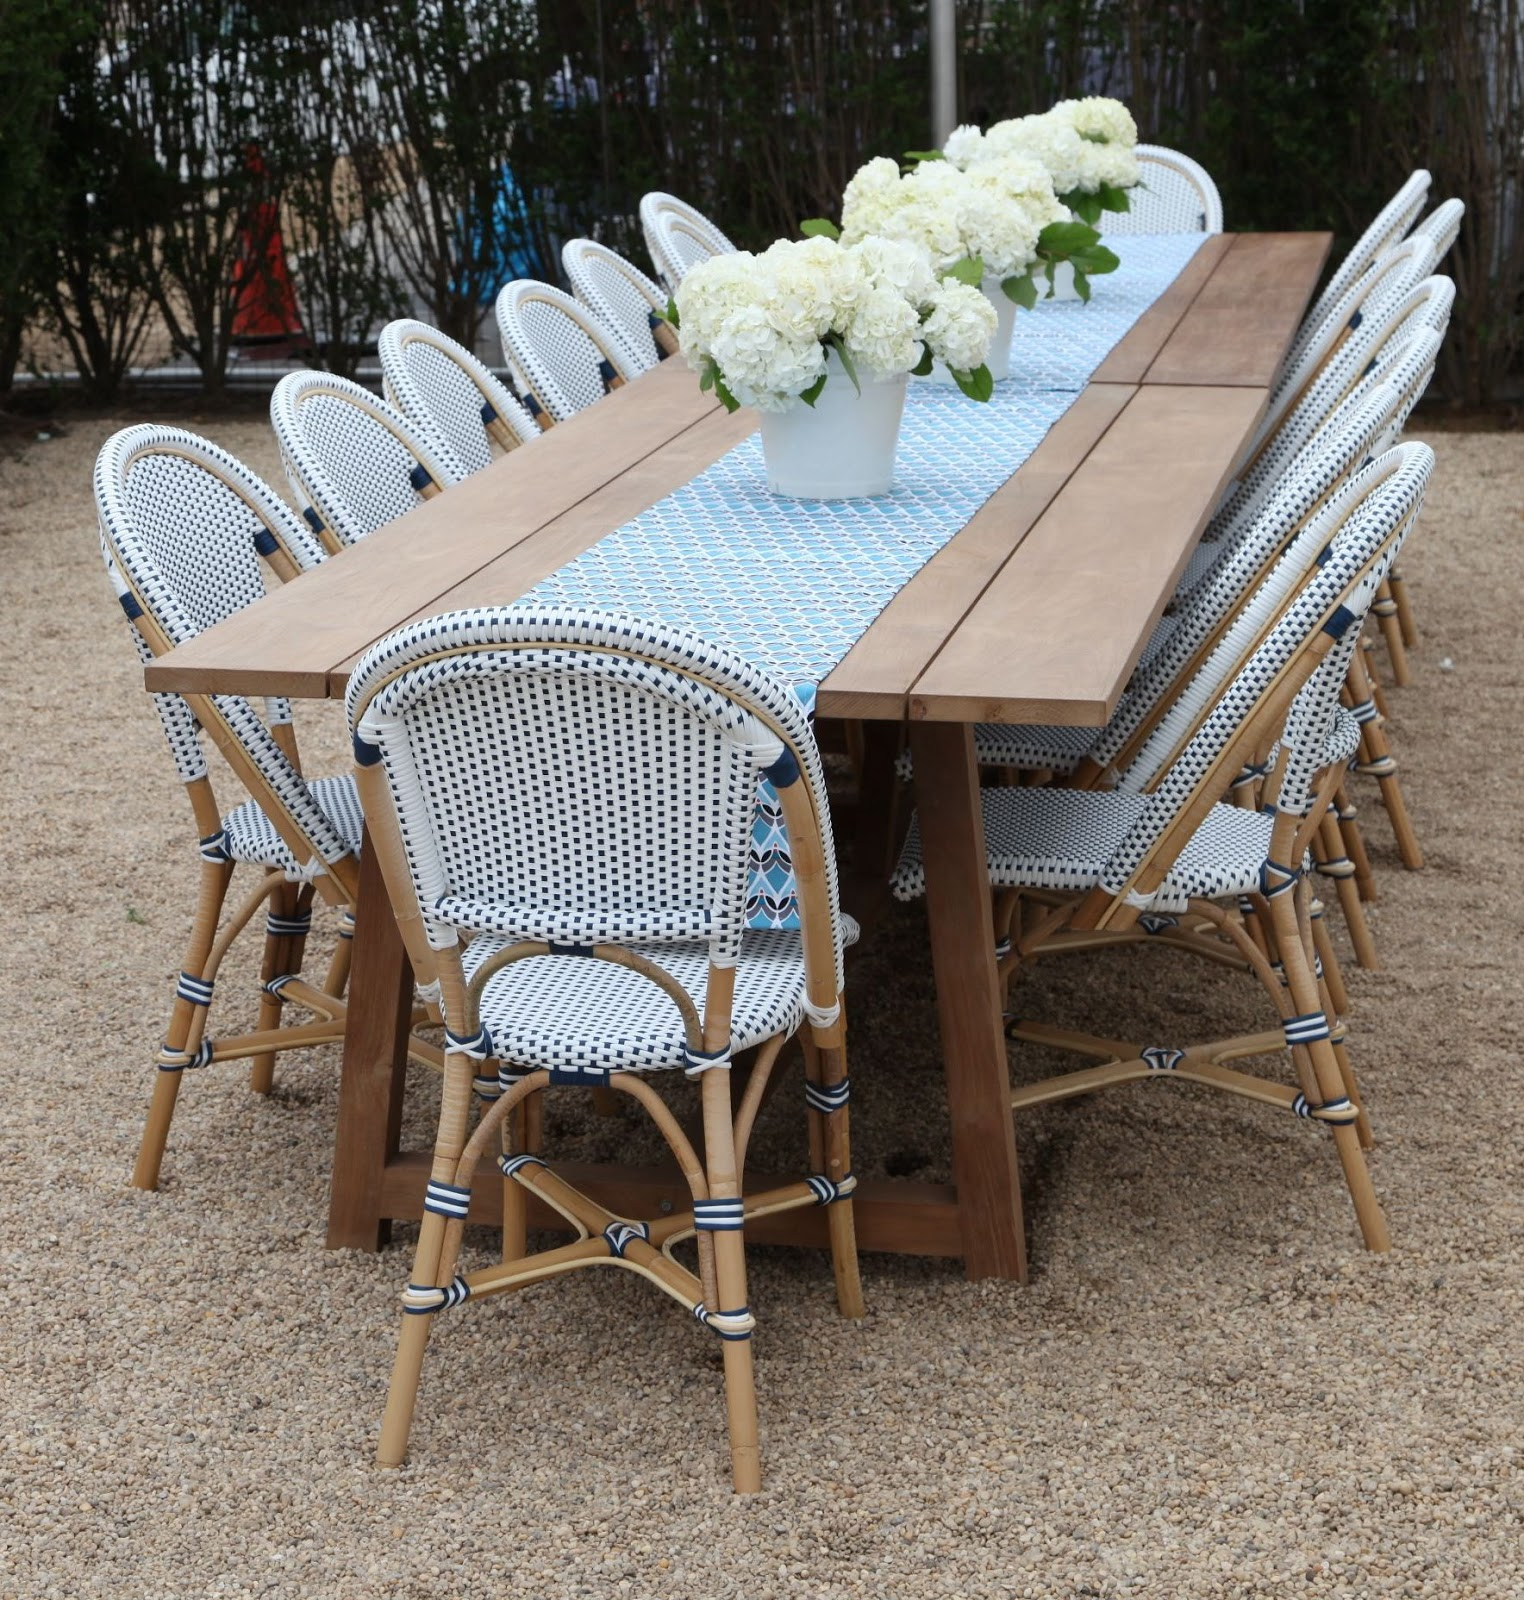 Outdoor Cafe Chairs Habitually Chic Serena And Lily Beach Market